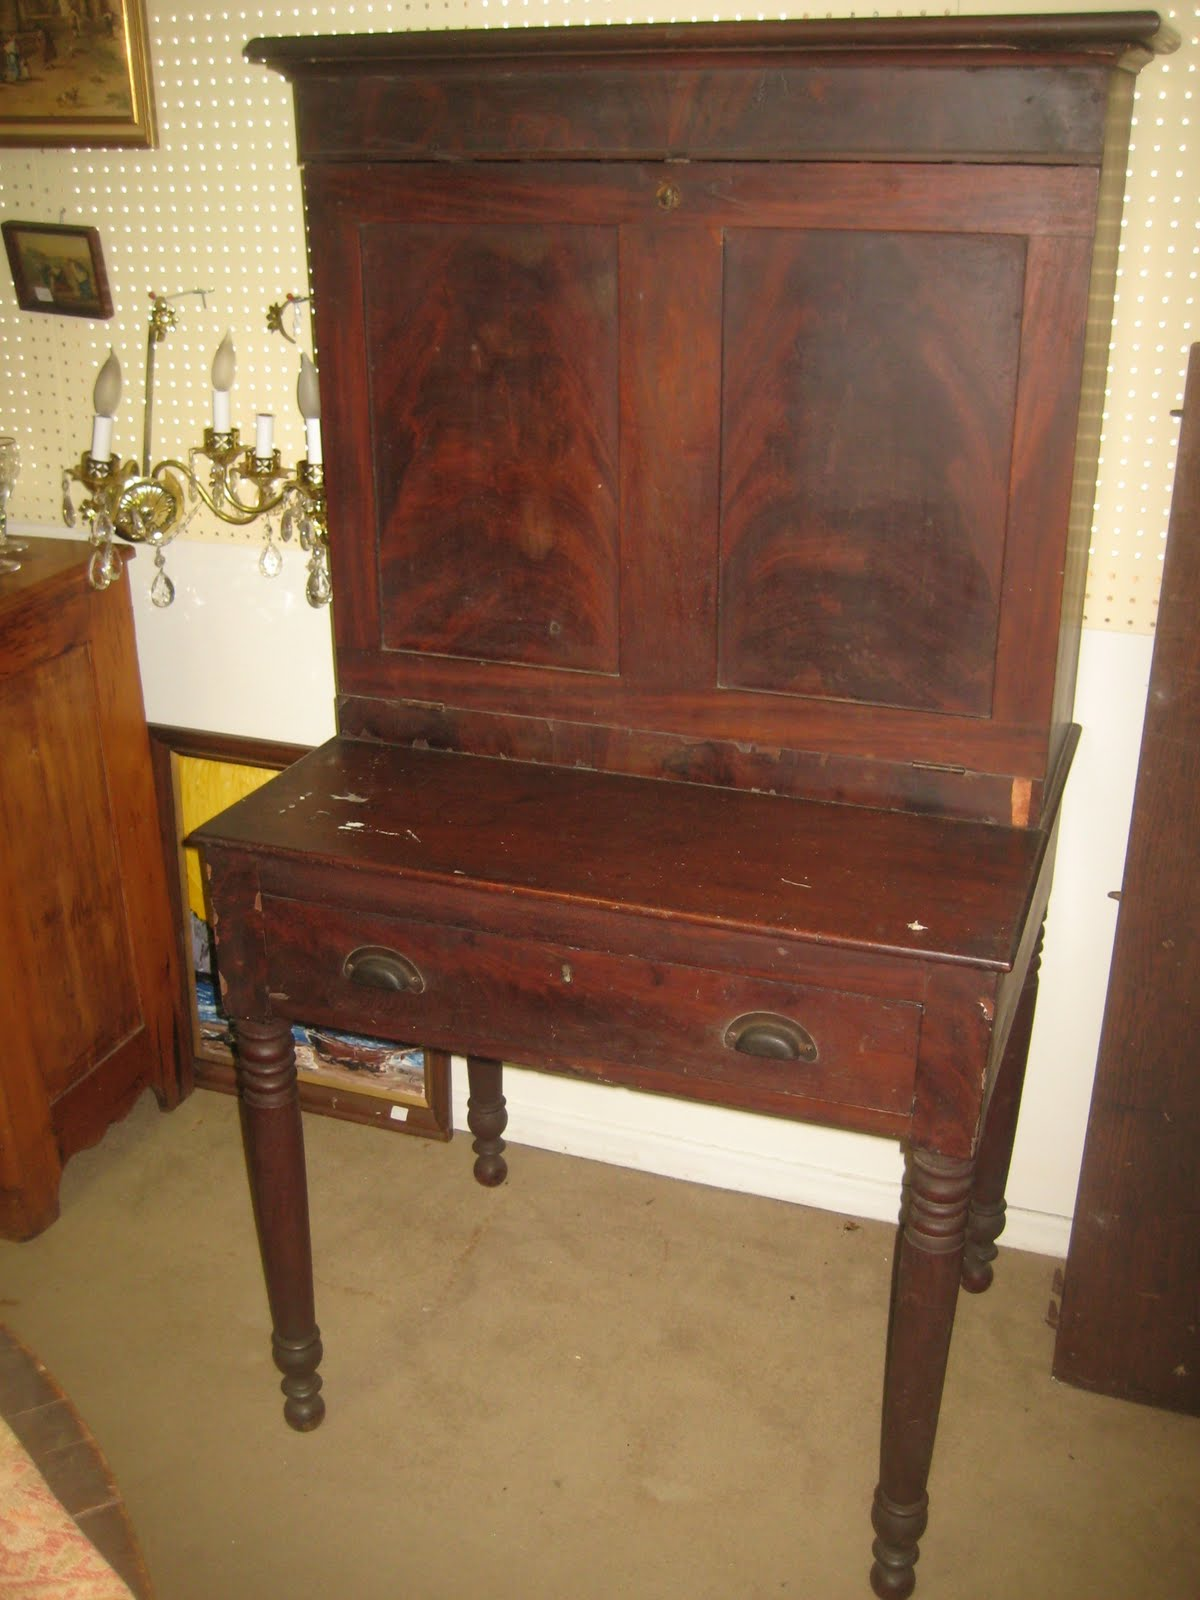 Mobile Alabama plantation desk I bought today part one - Southern Folk Artist & Antiques Dealer/Collector: Mobile Alabama